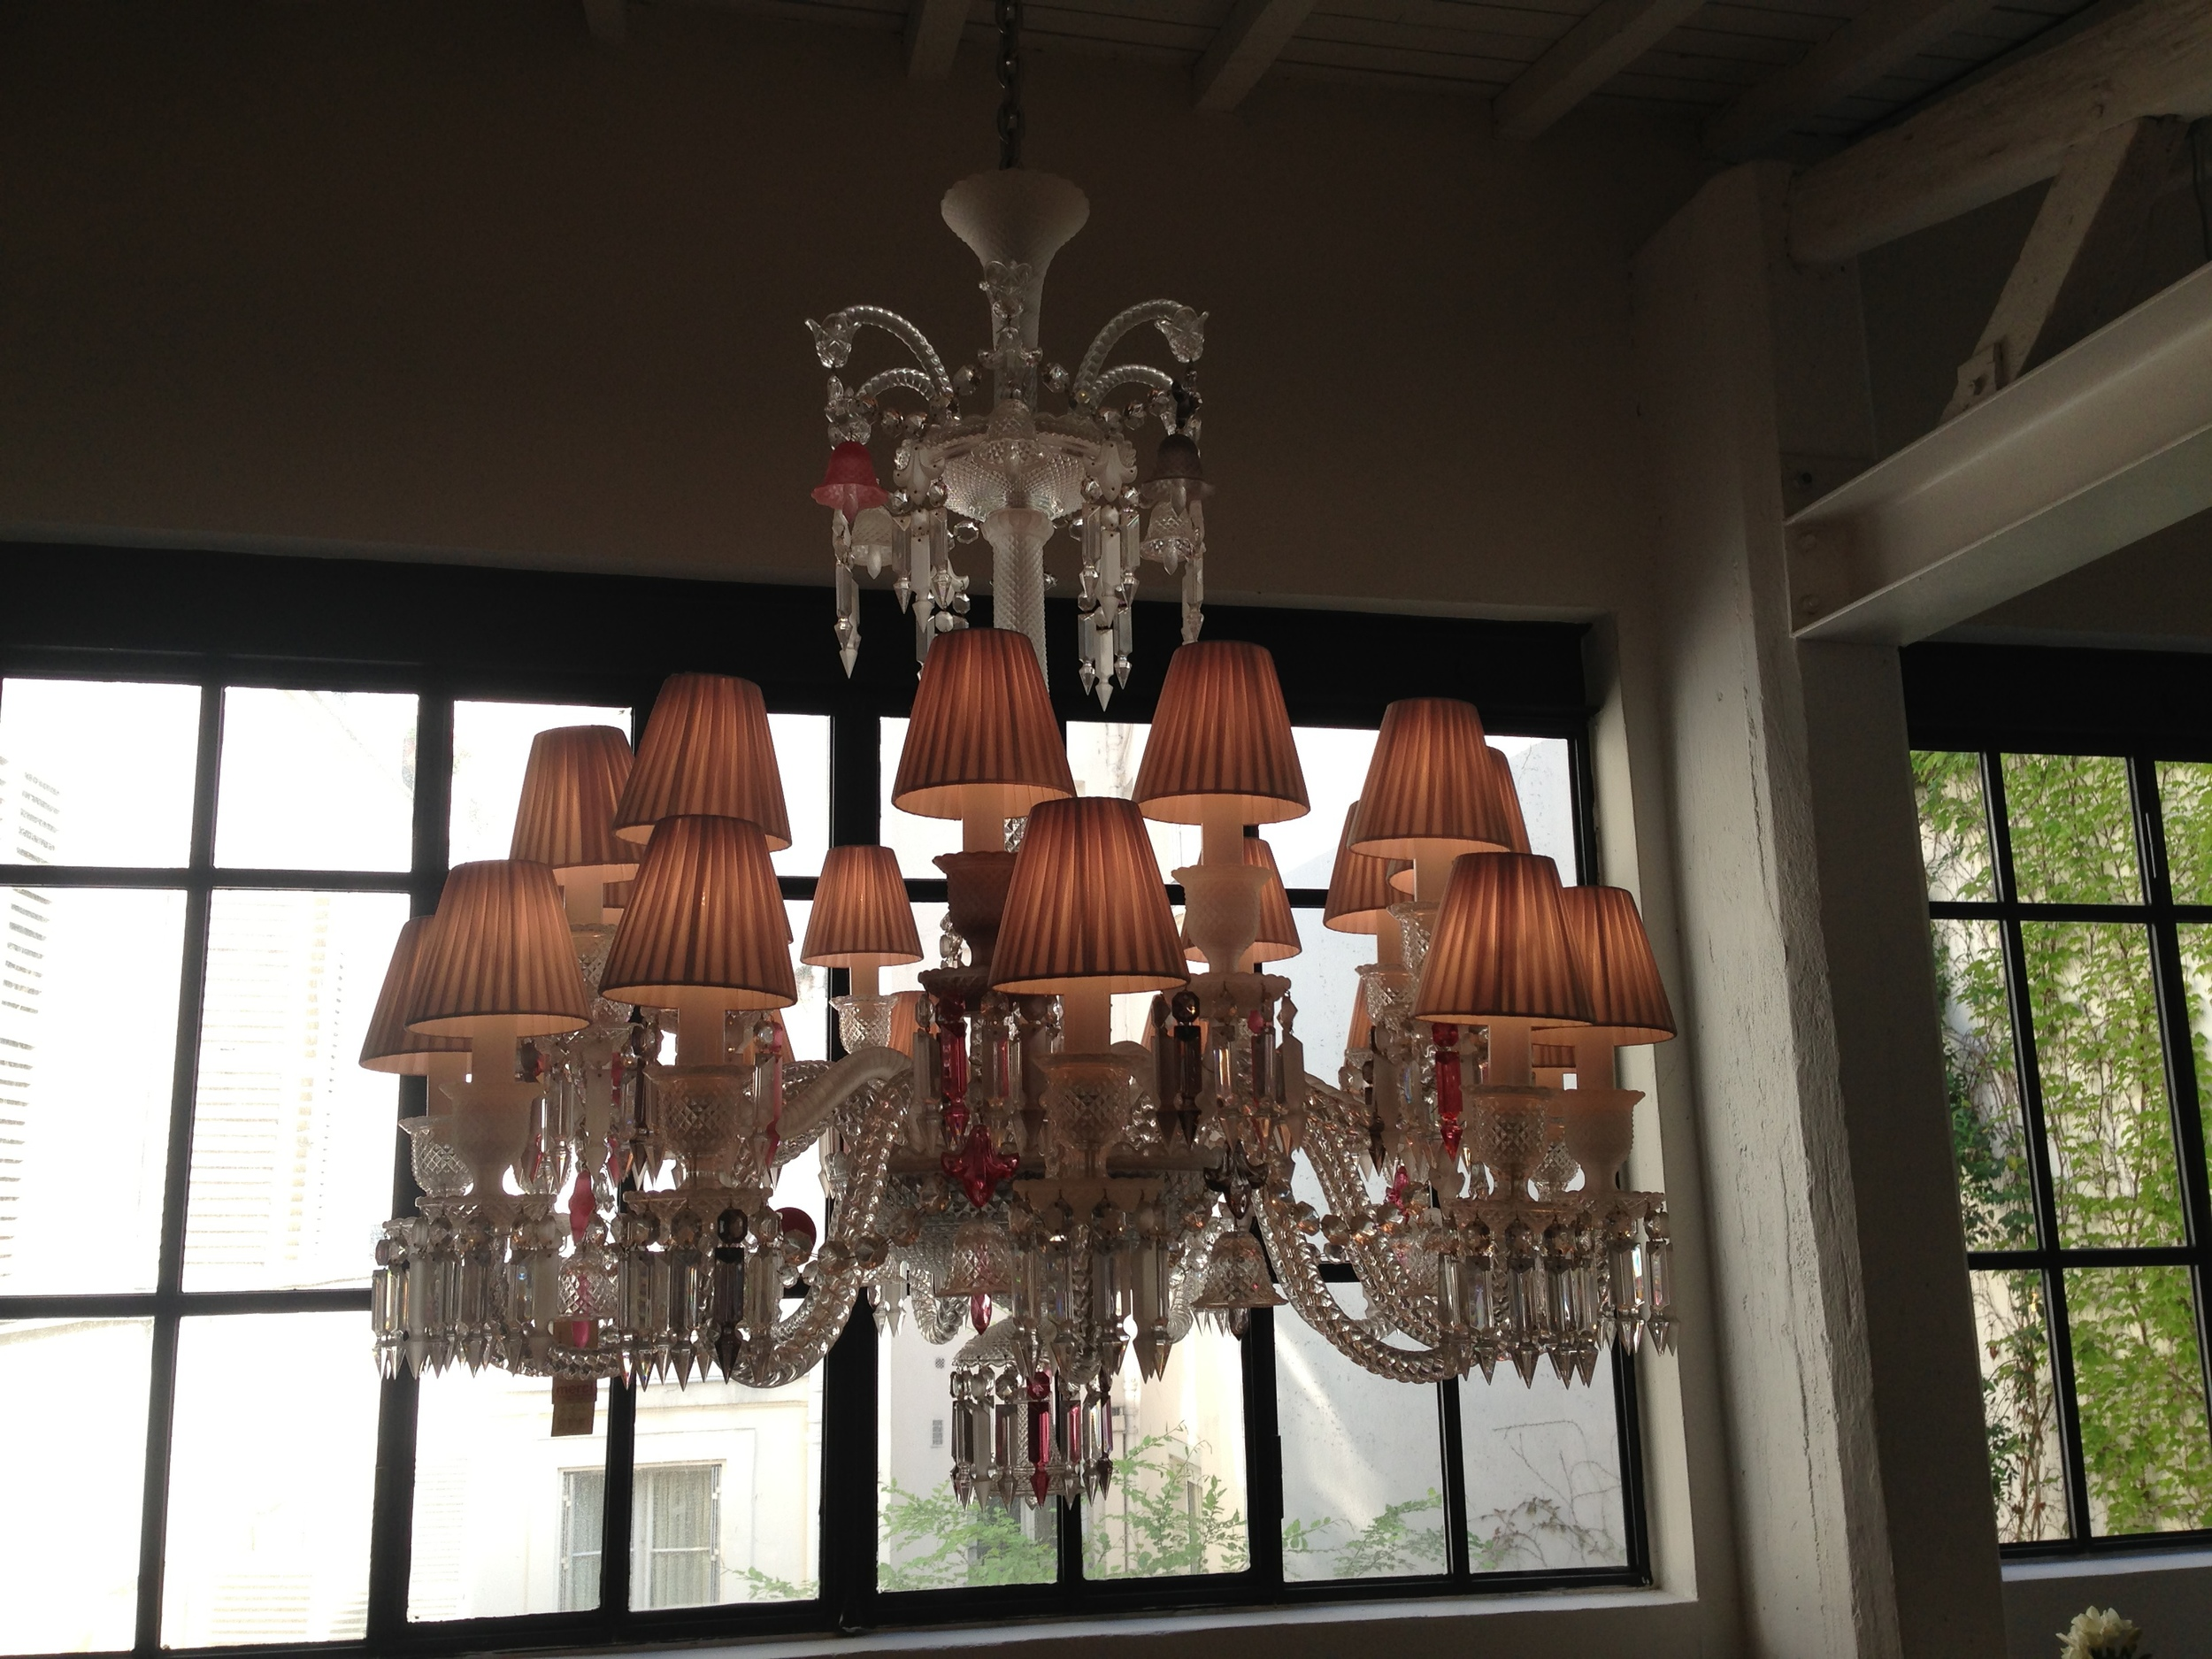 Another beautiful chandelier!